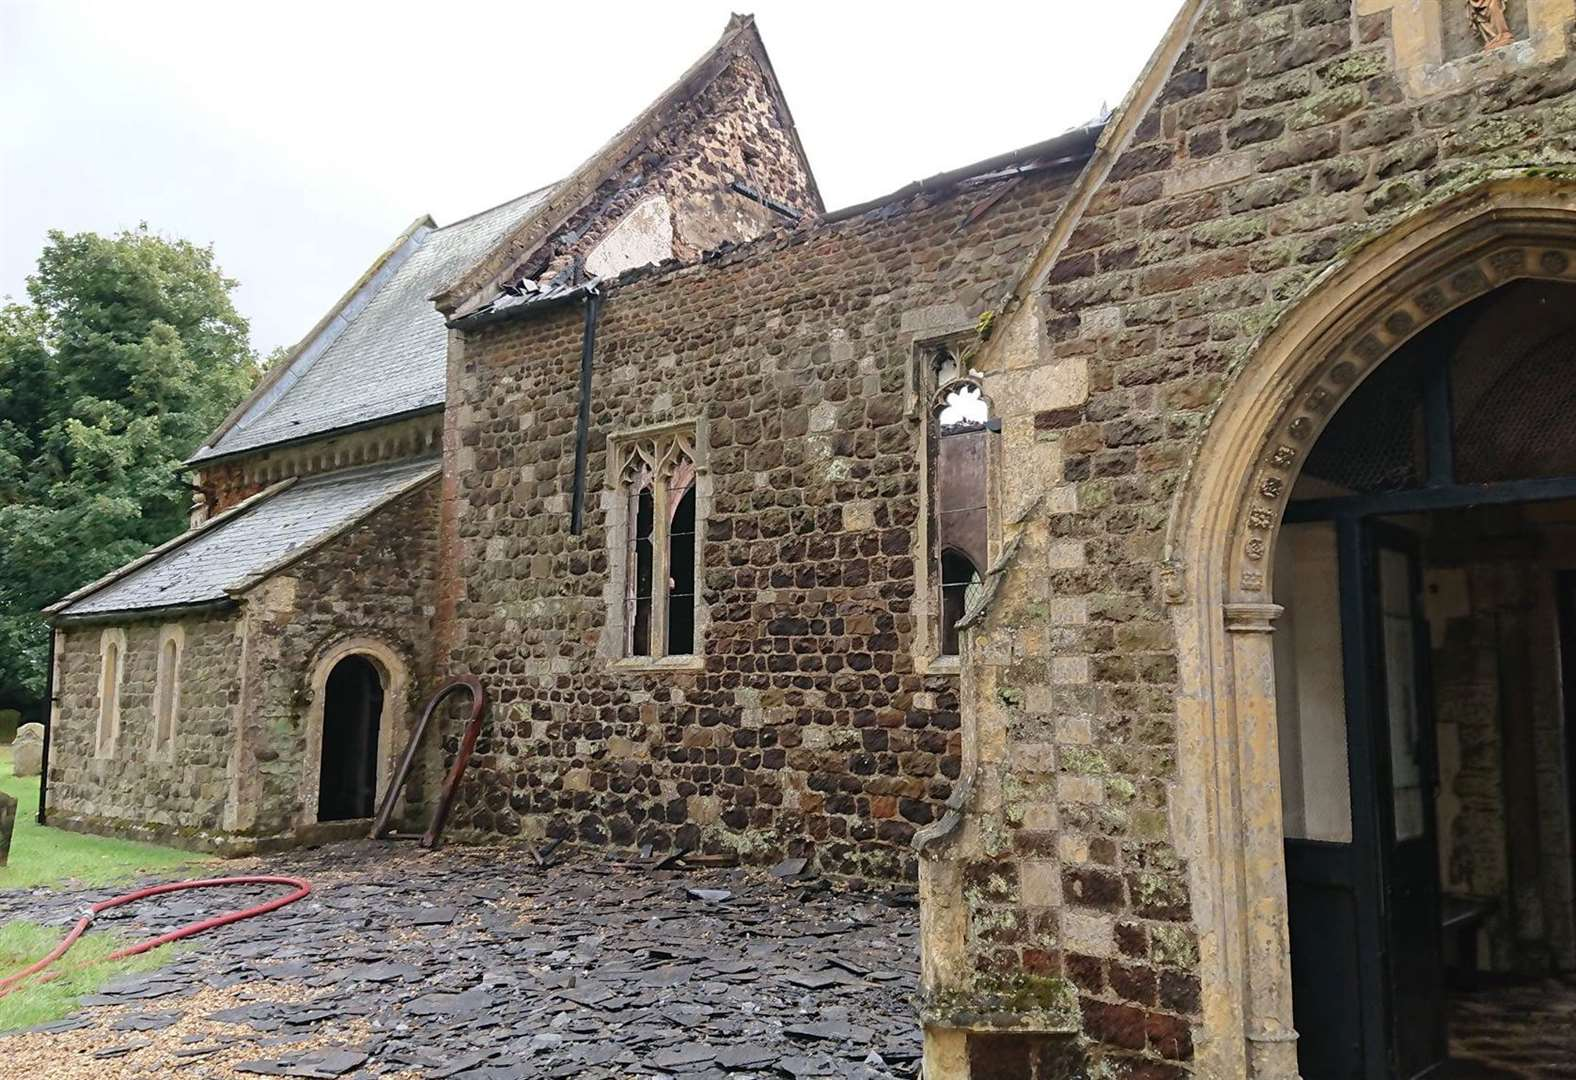 Online fundraising campaign launched to save fire-devastated village church